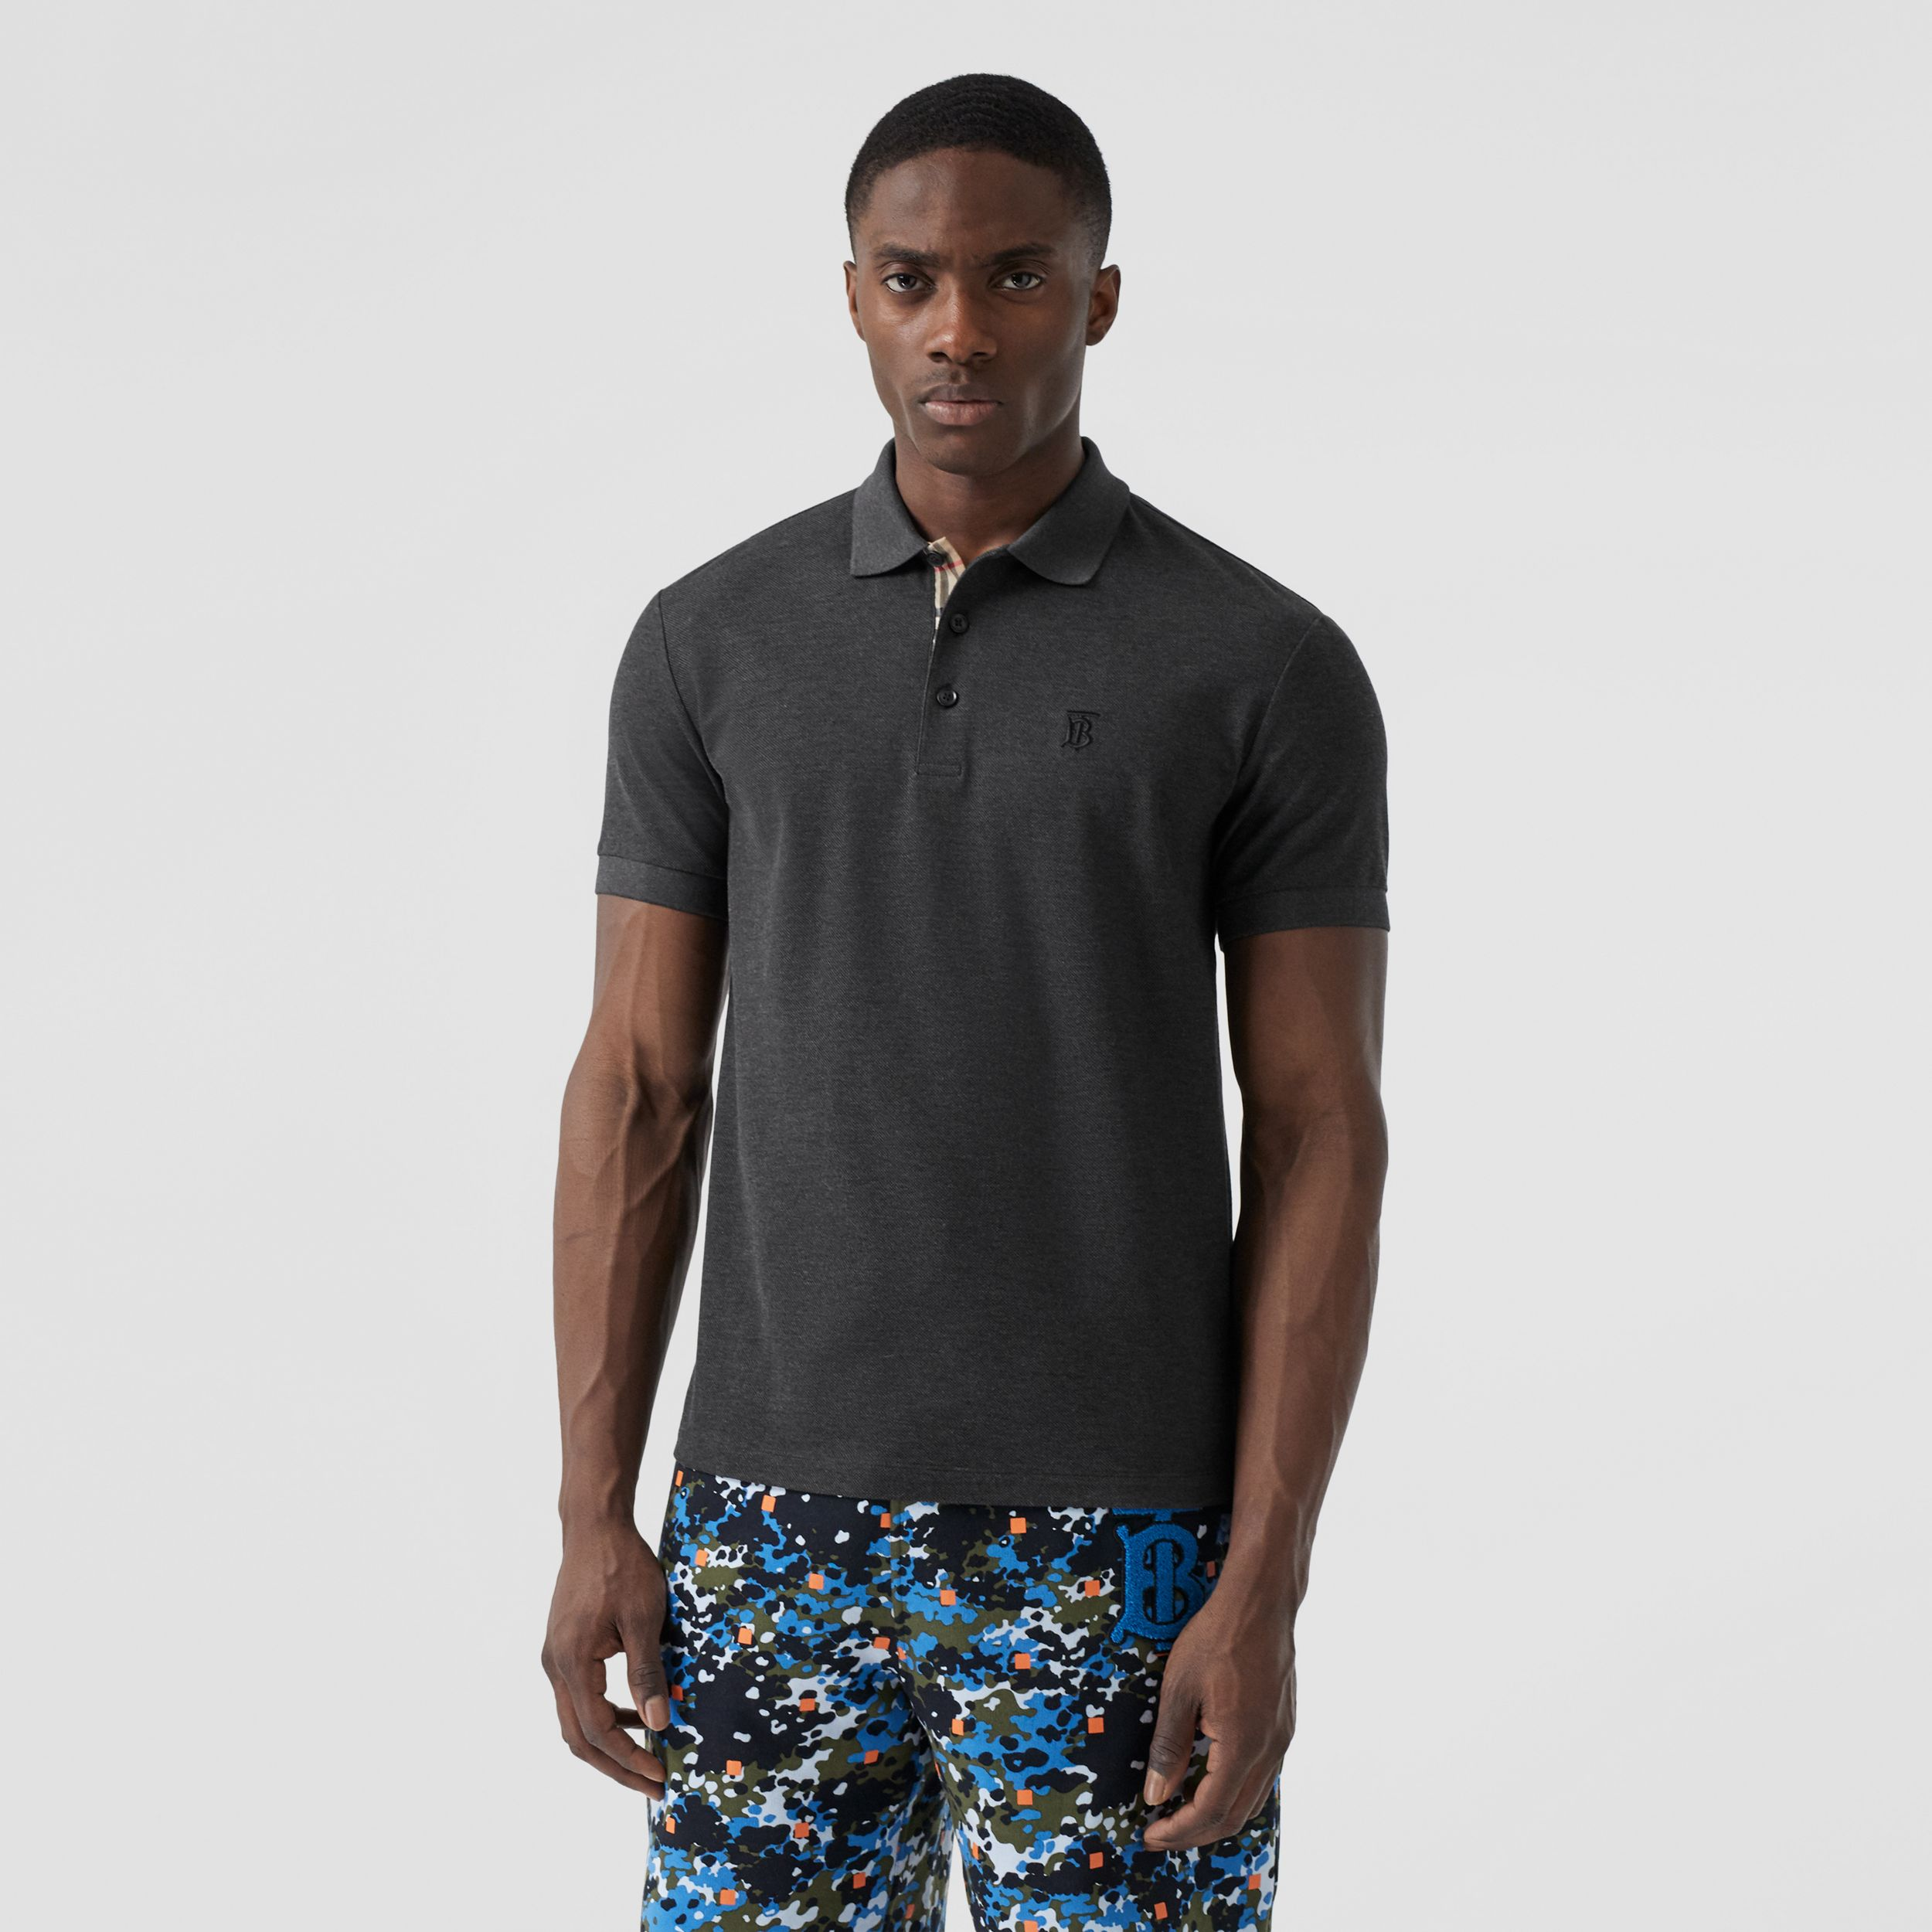 Monogram Motif Cotton Piqué Polo Shirt in Charcoal Melange - Men | Burberry Canada - 1